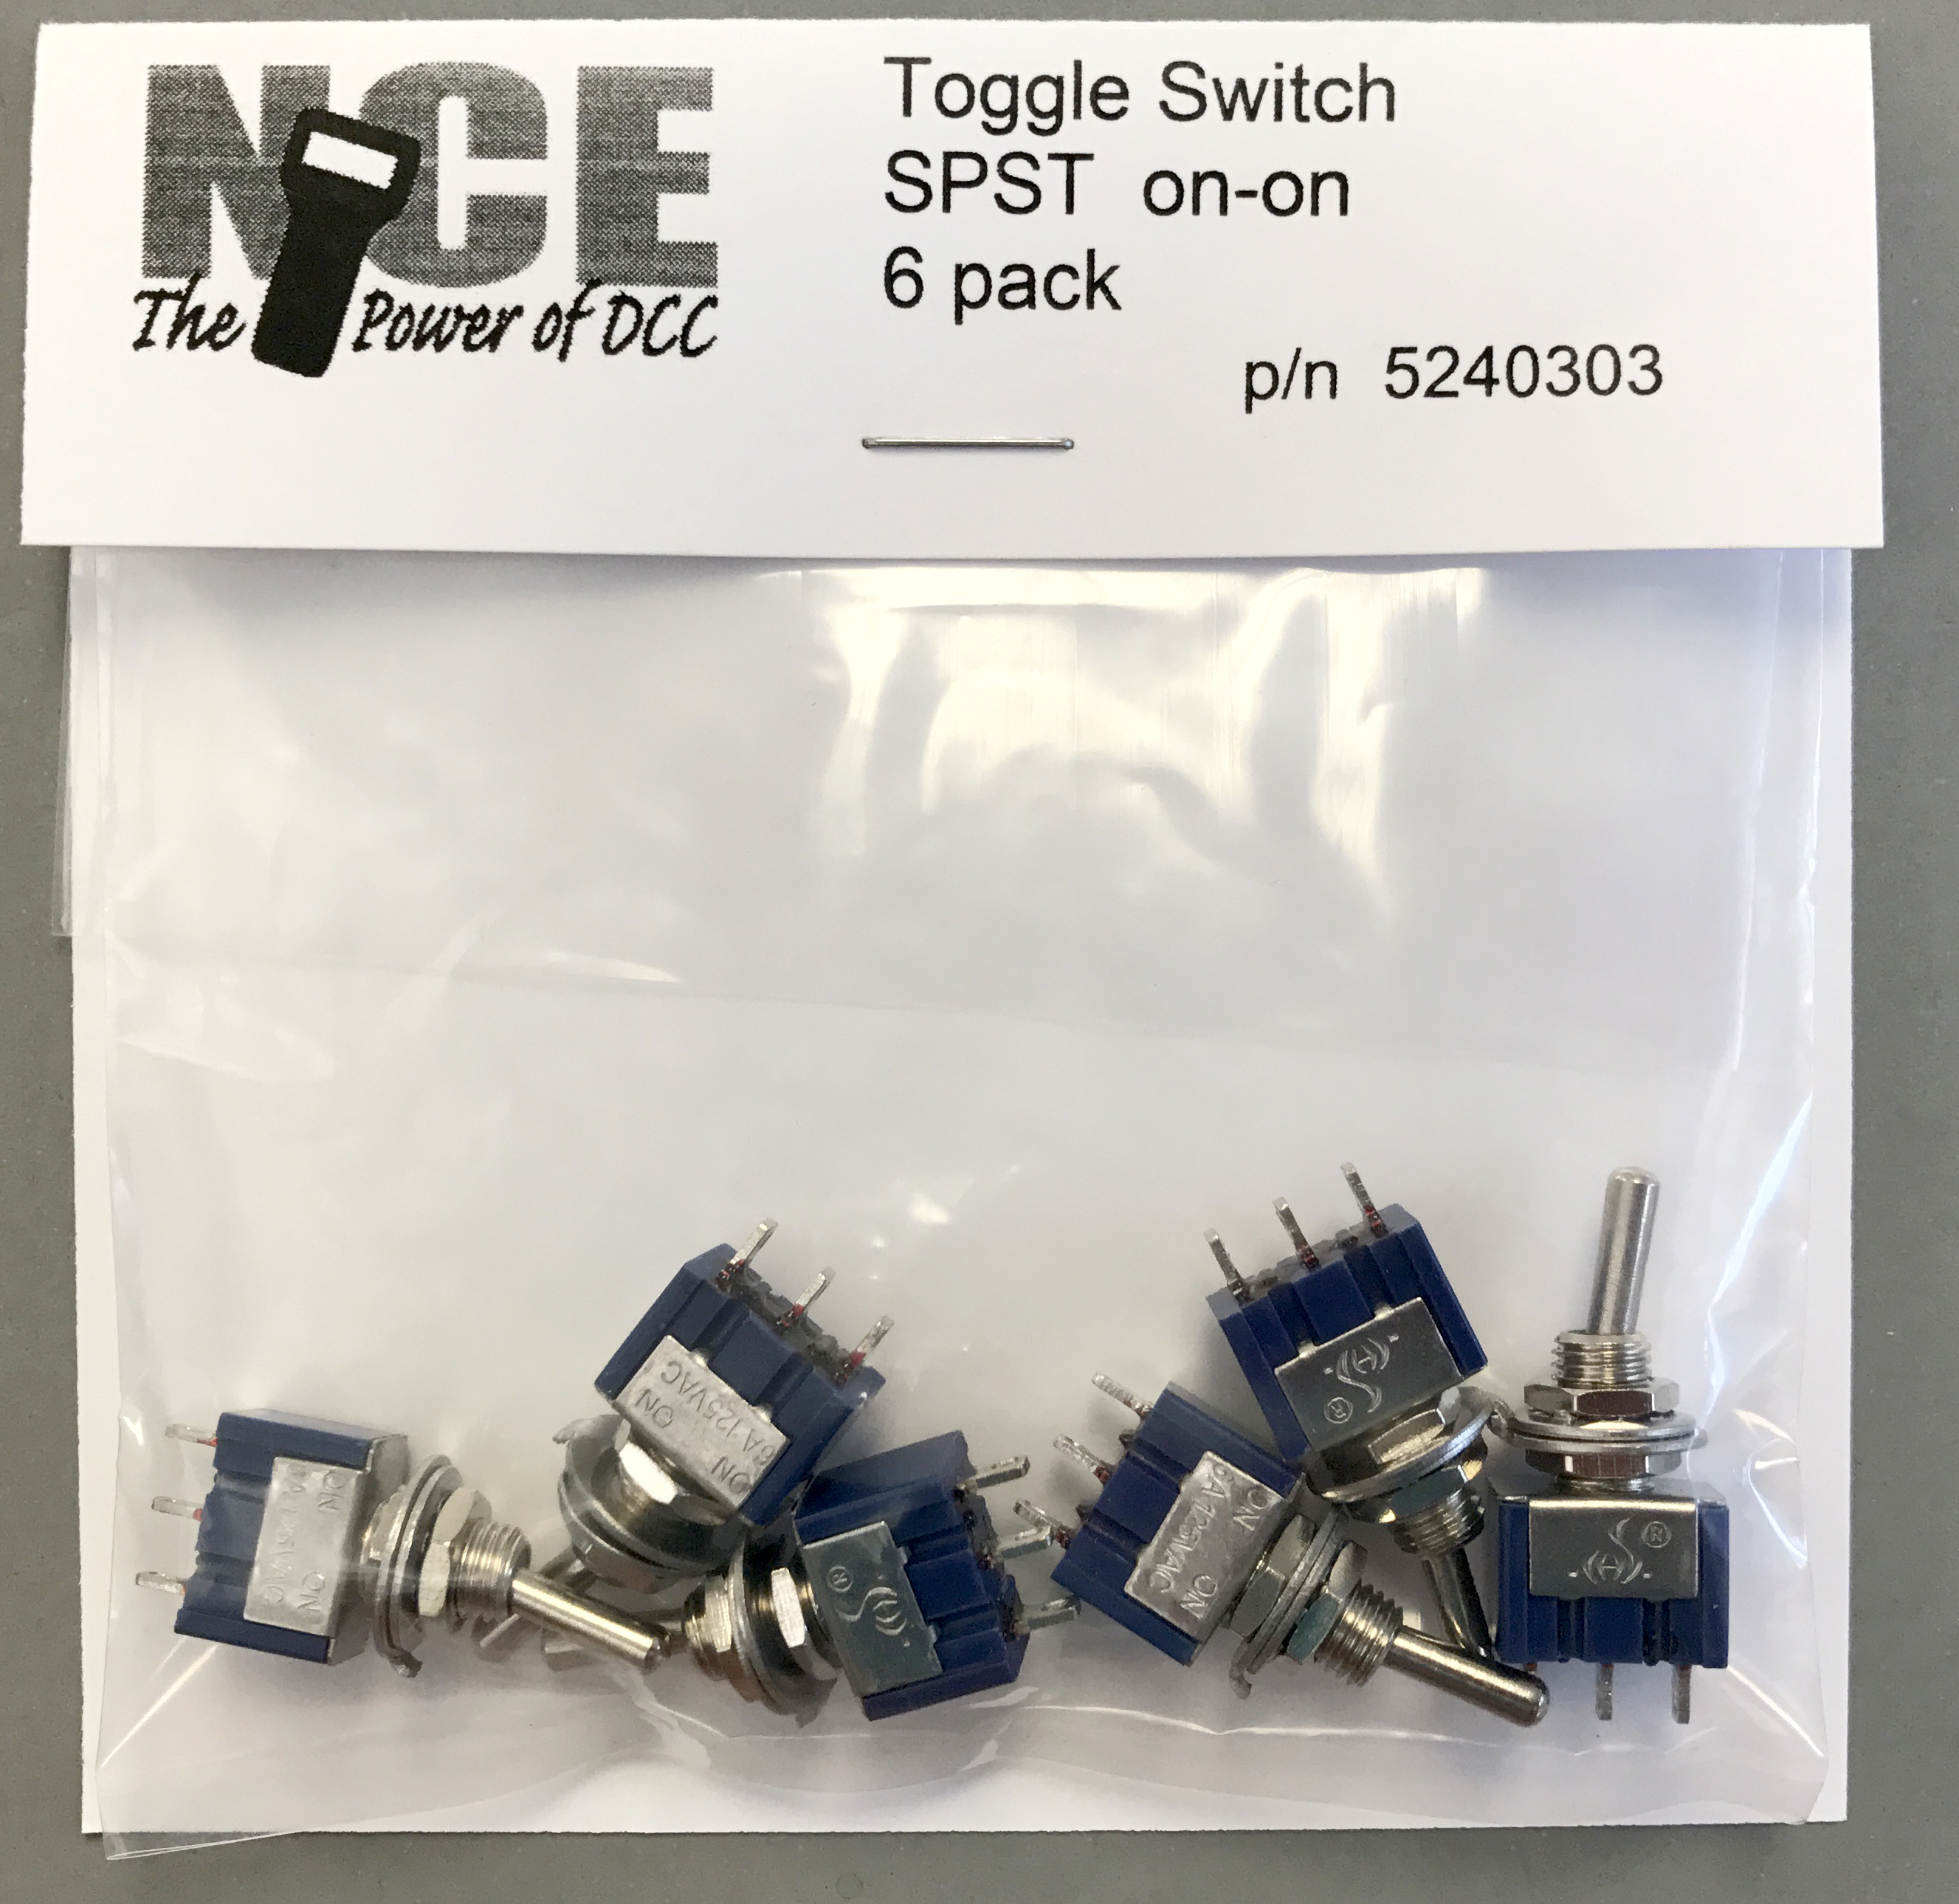 Toggle Switches Welcome To The Nce Information Station Spst 125vac Switch Wiring Diagram 5240303 6pack